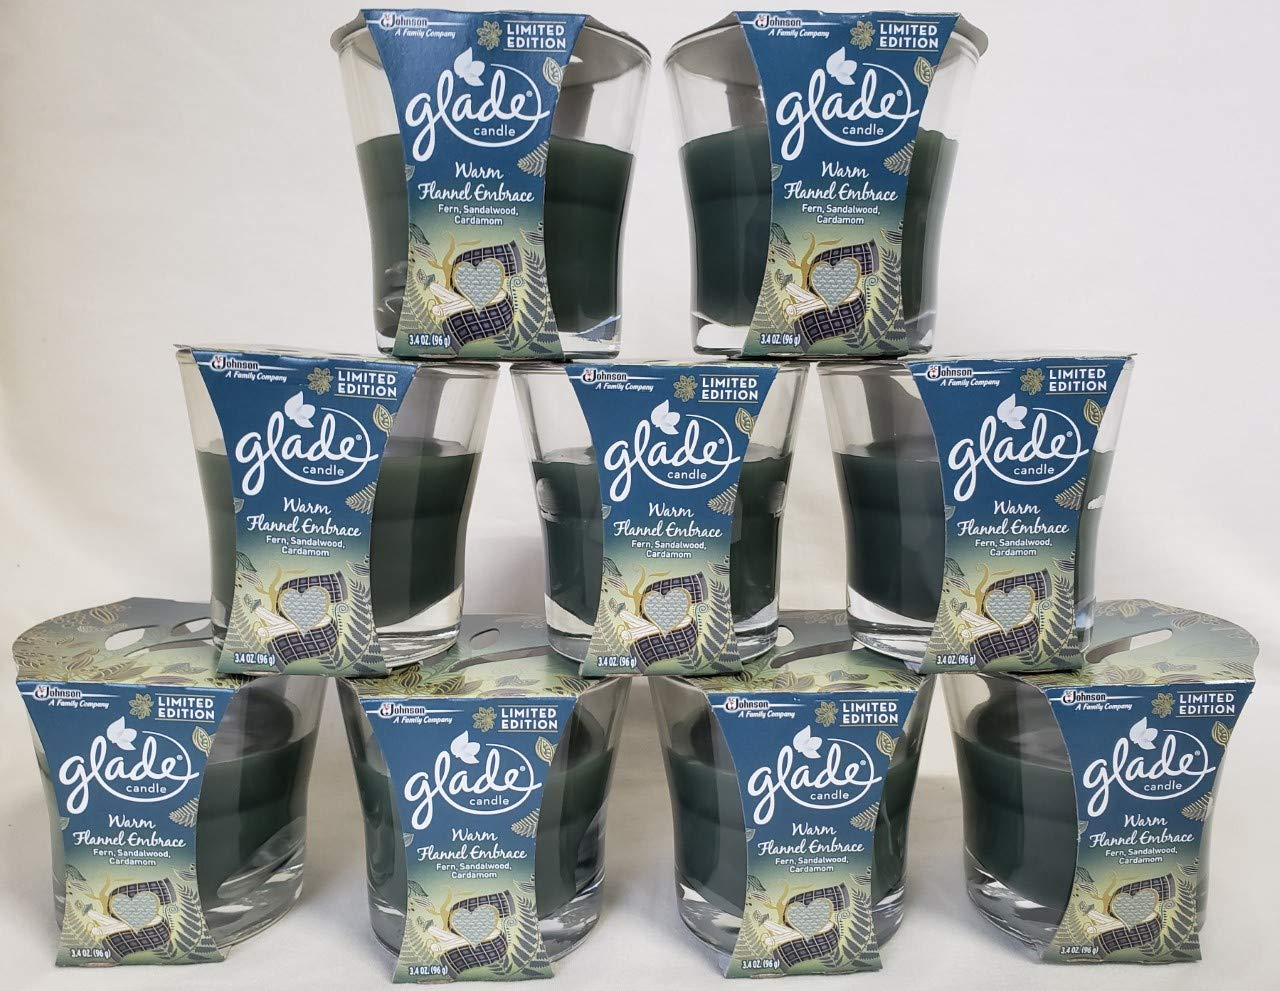 Lot of 9 - GLADE WARM FLANNEL EMBRACE LIMITED EDITION OIL CANDLES 3.4OZ FERN by Glade